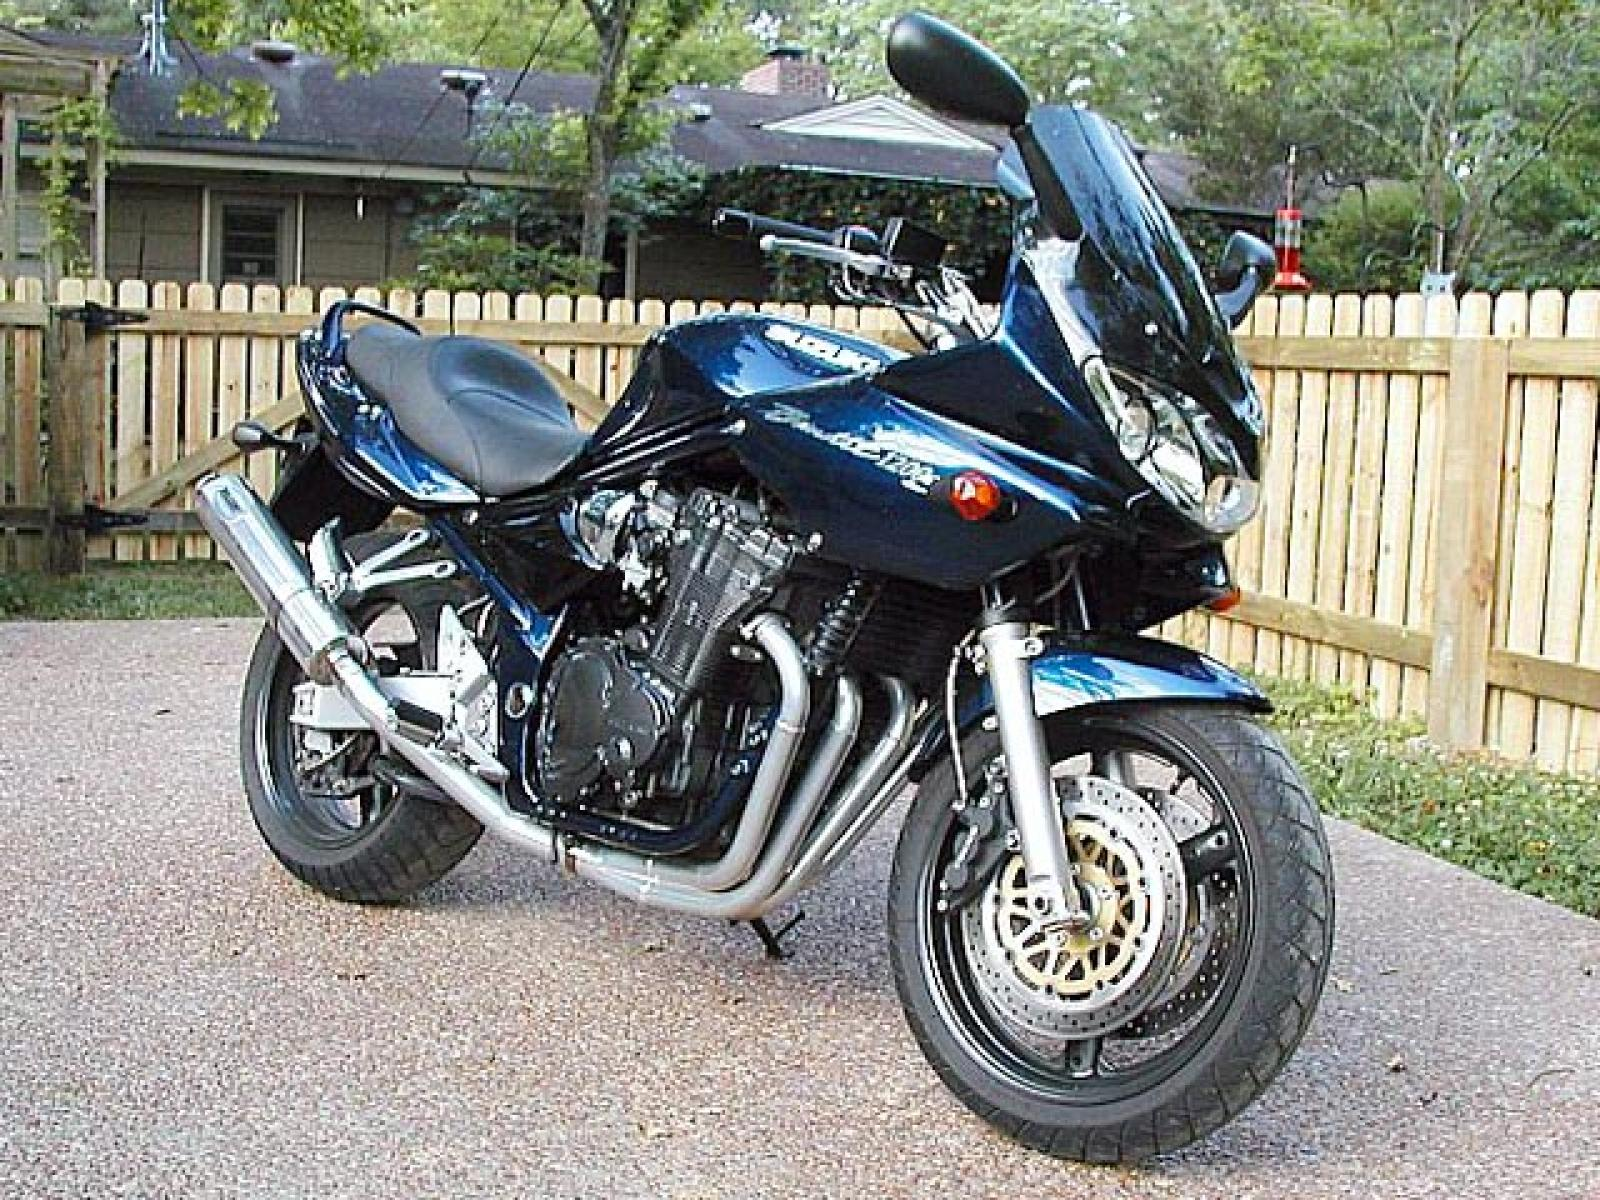 2002 suzuki gsf 1200 s bandit moto zombdrive com. Black Bedroom Furniture Sets. Home Design Ideas